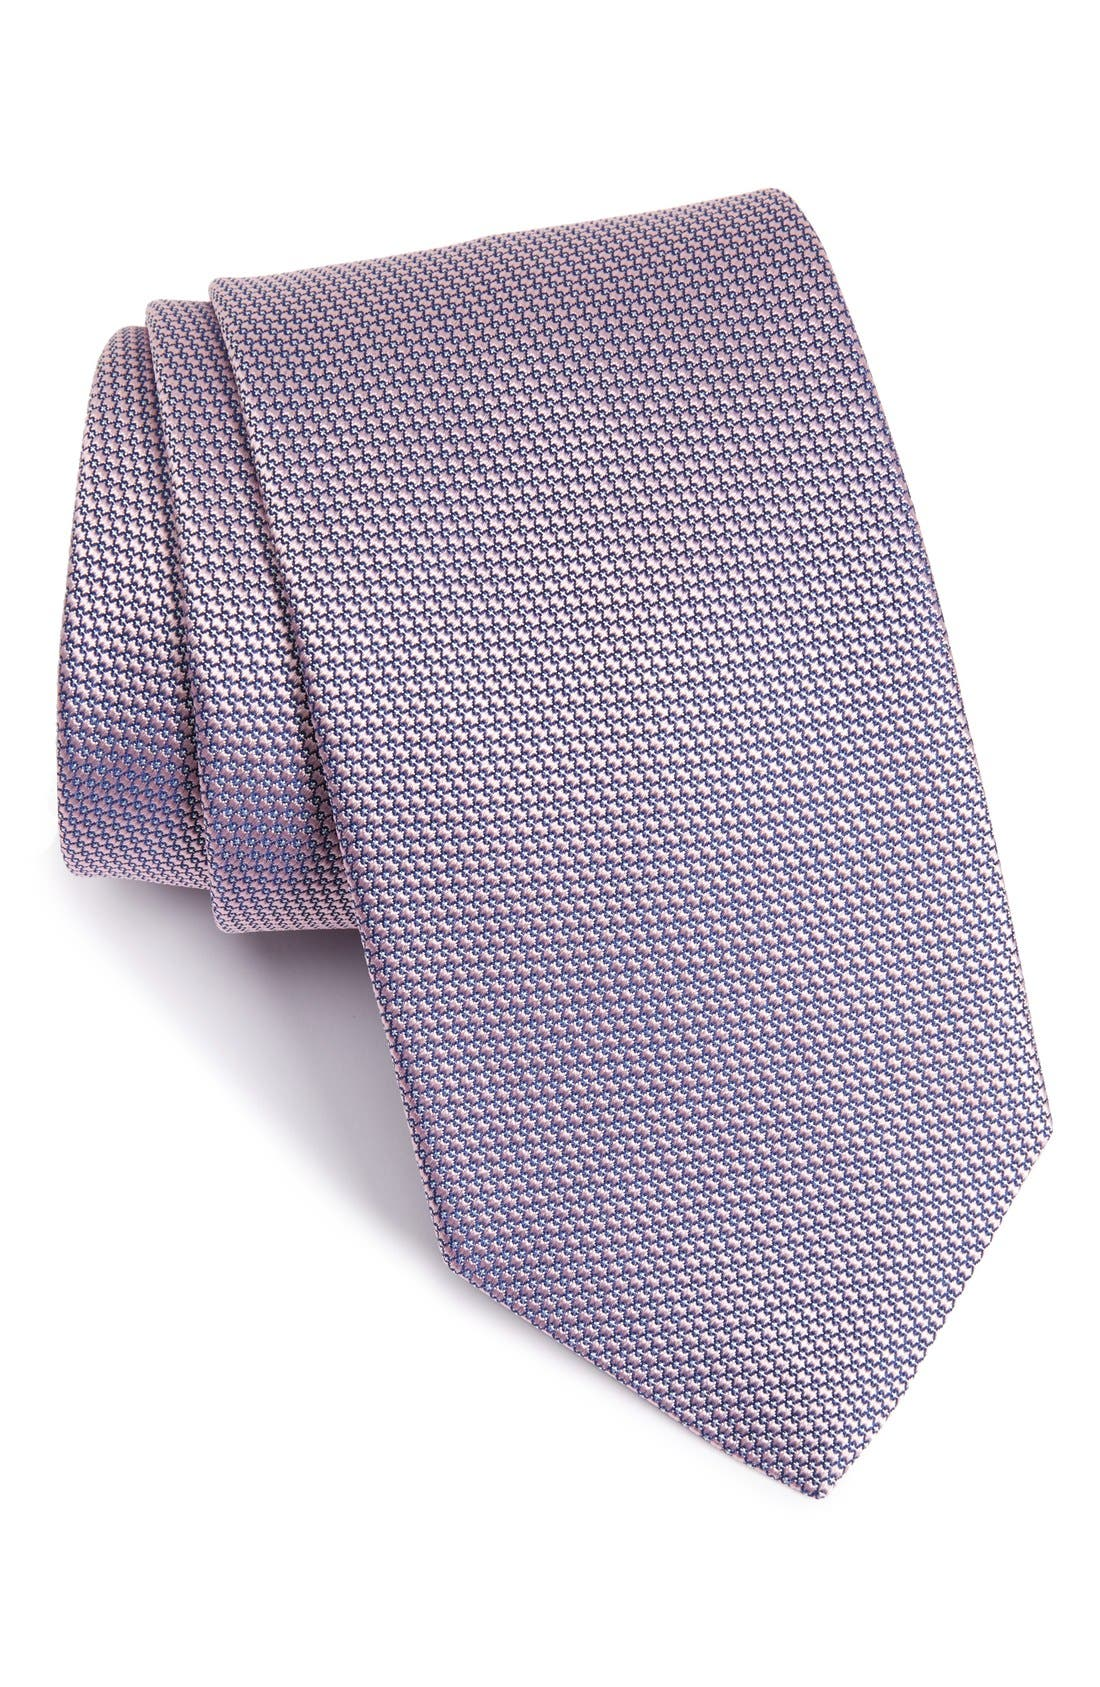 Microdot Silk Tie,                             Main thumbnail 1, color,                             Pink